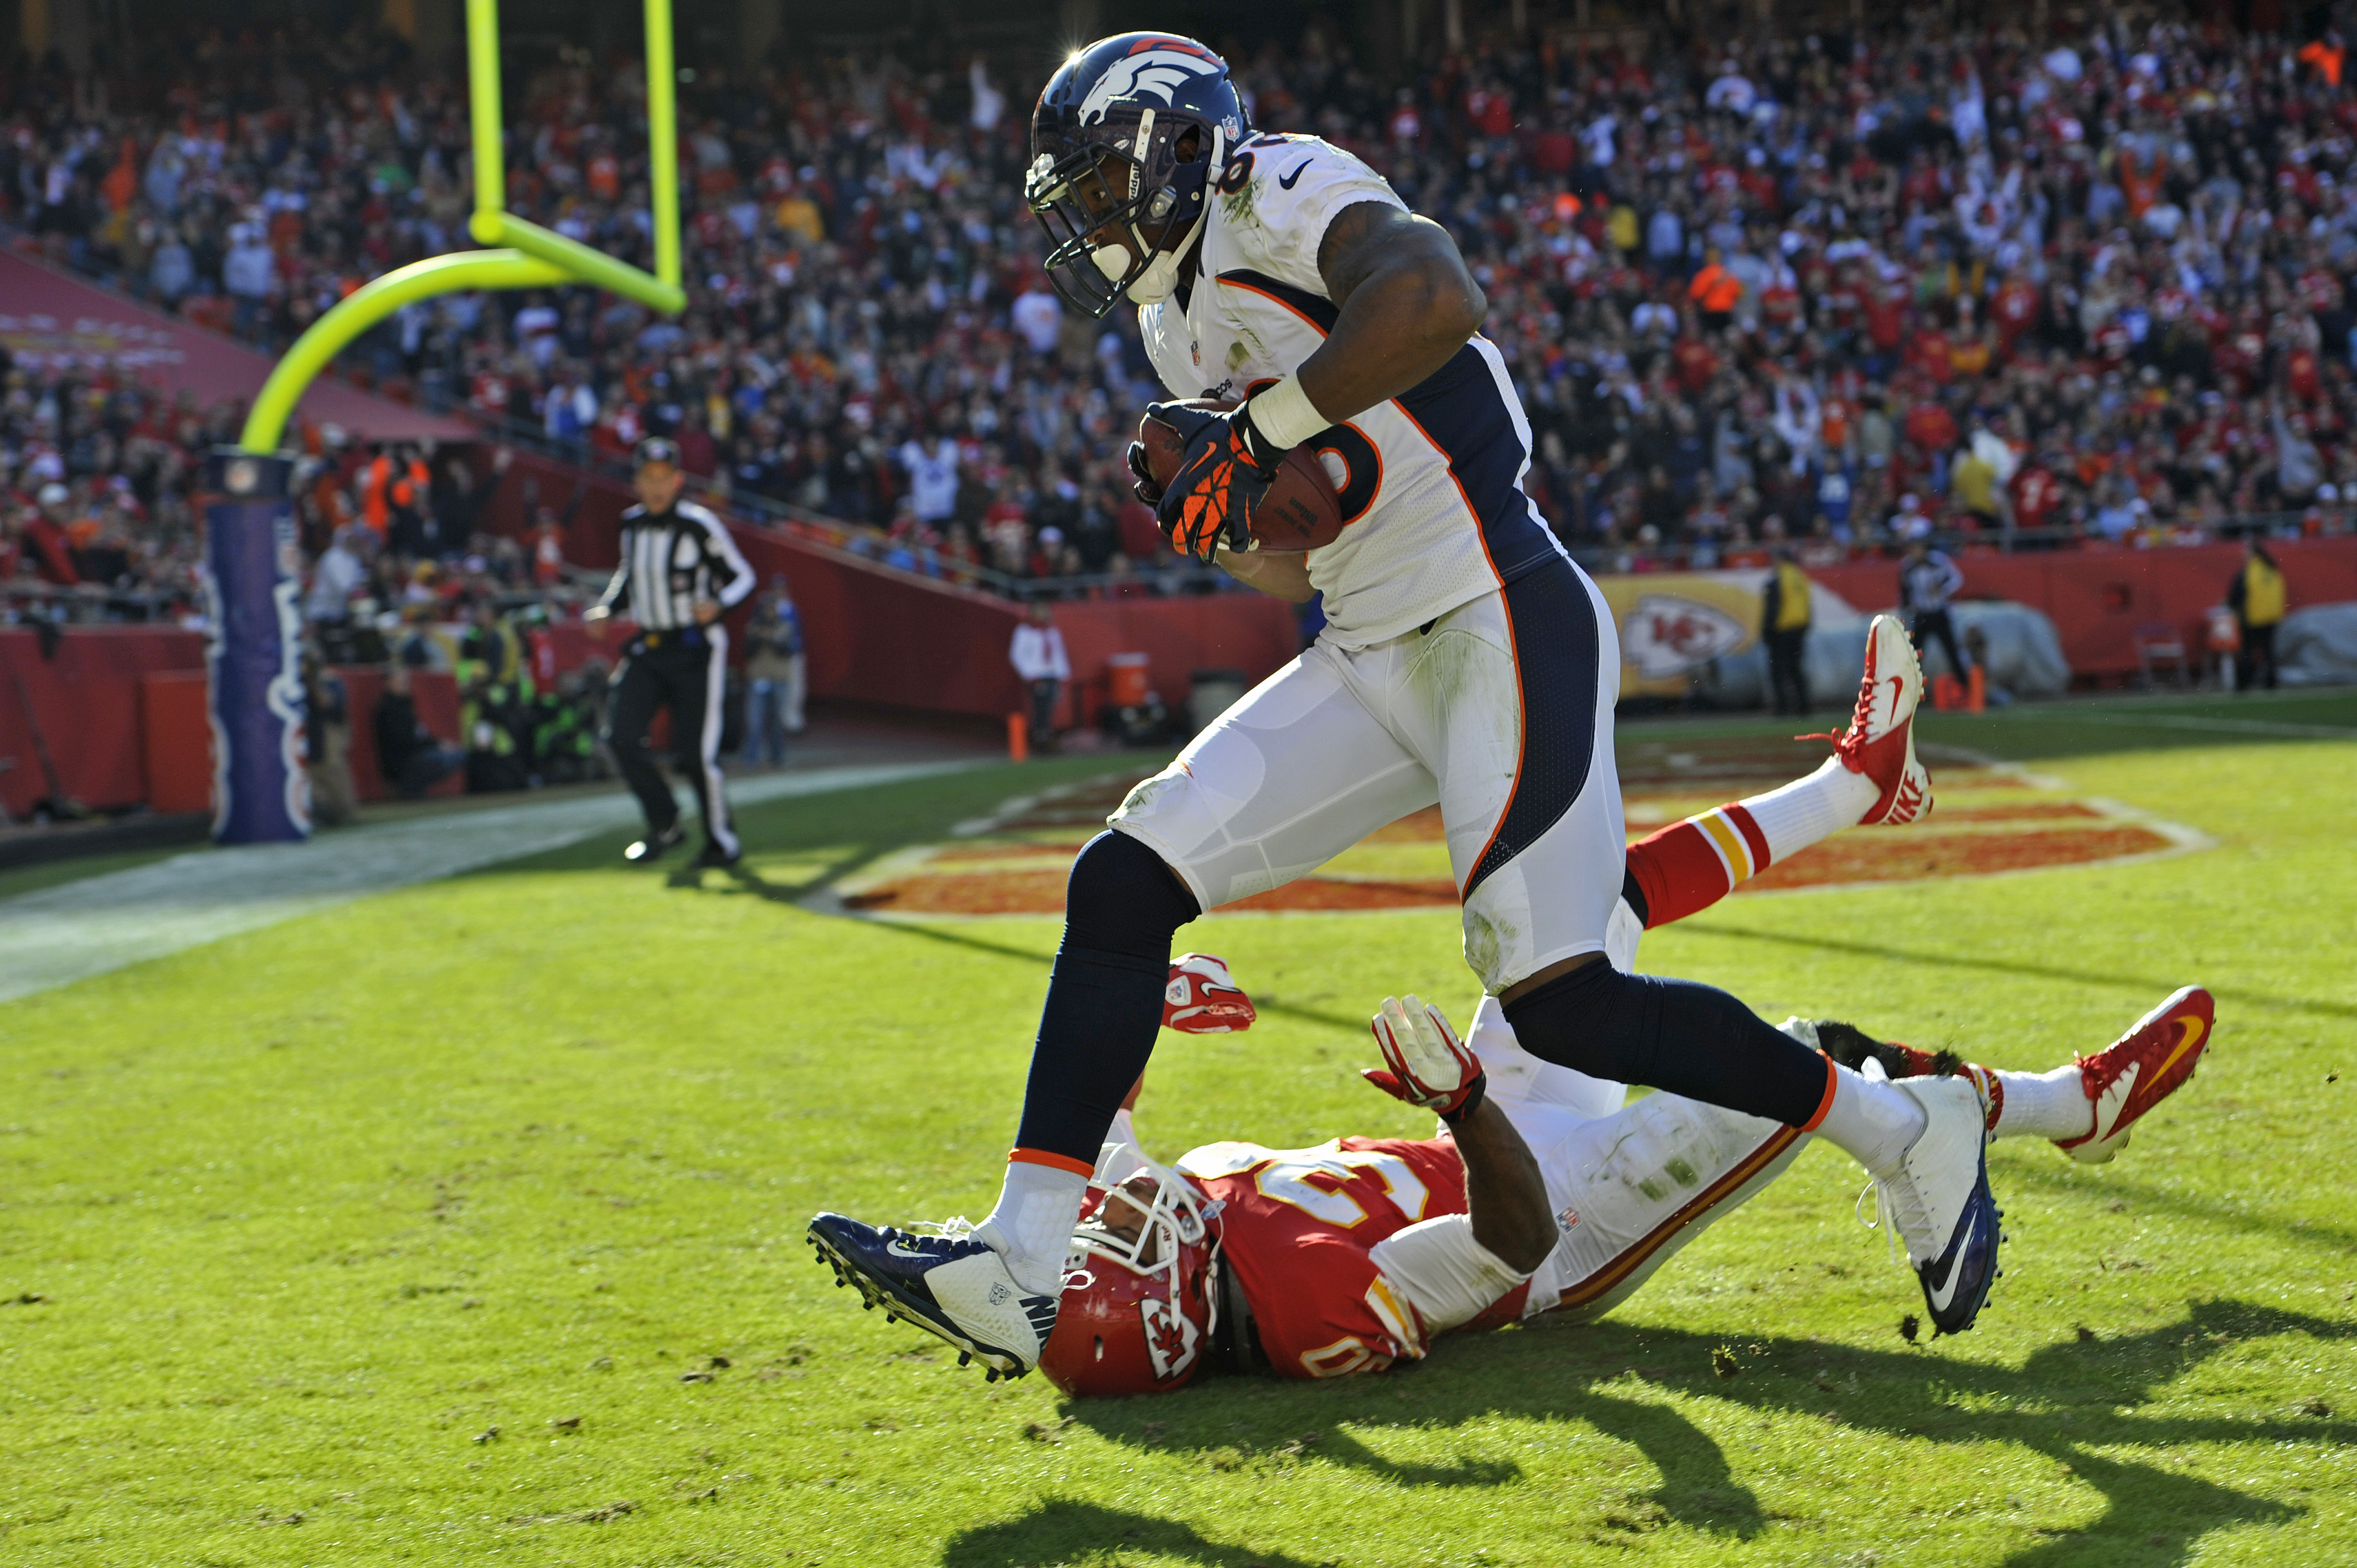 Wide receiver Demaryius Thomas #88 of the Denver Broncos catches a 30-yard touchdown pass against defensive back Jalil Brown #30 of the Kansas City Chiefs during the third quarter on Nov. 25, 2012 at Arrowhead Stadium. (Photo by Peter Aiken/Getty Images)